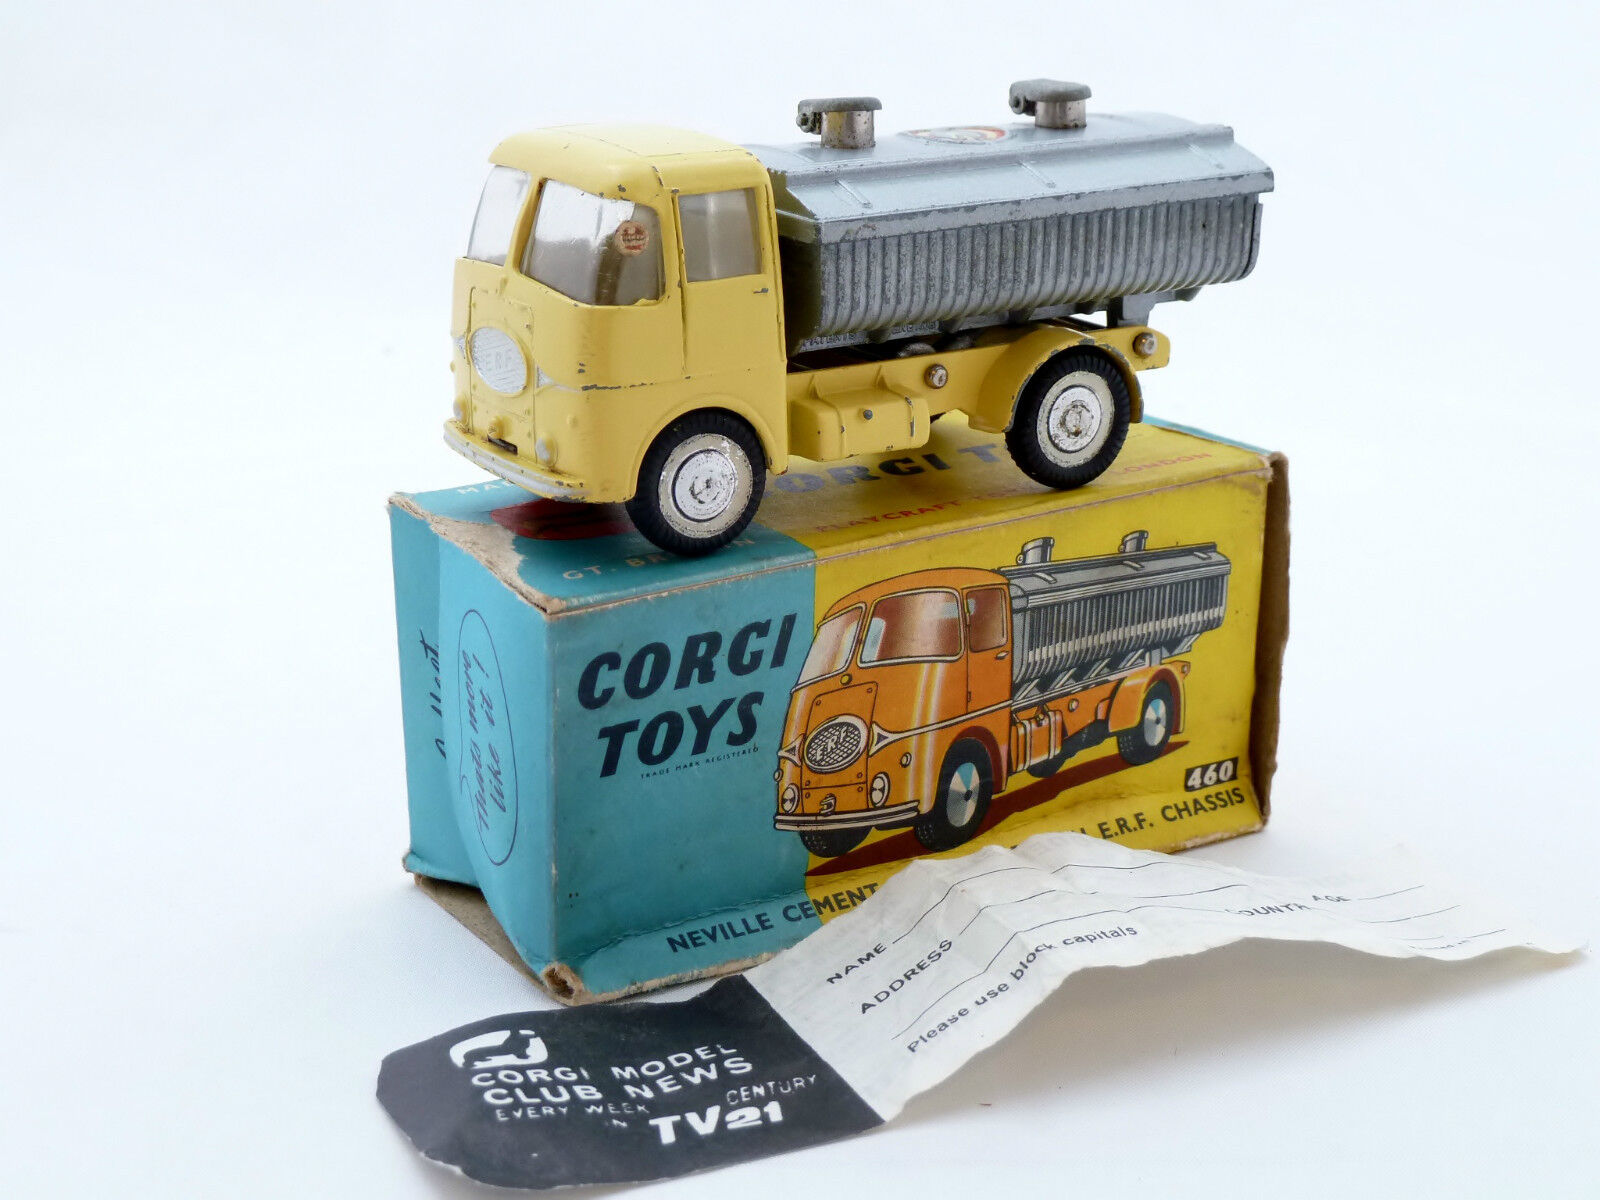 CORGI 460 NEVILLE CEMENT TIPPER BODY ON E.R.F. CHASSIS